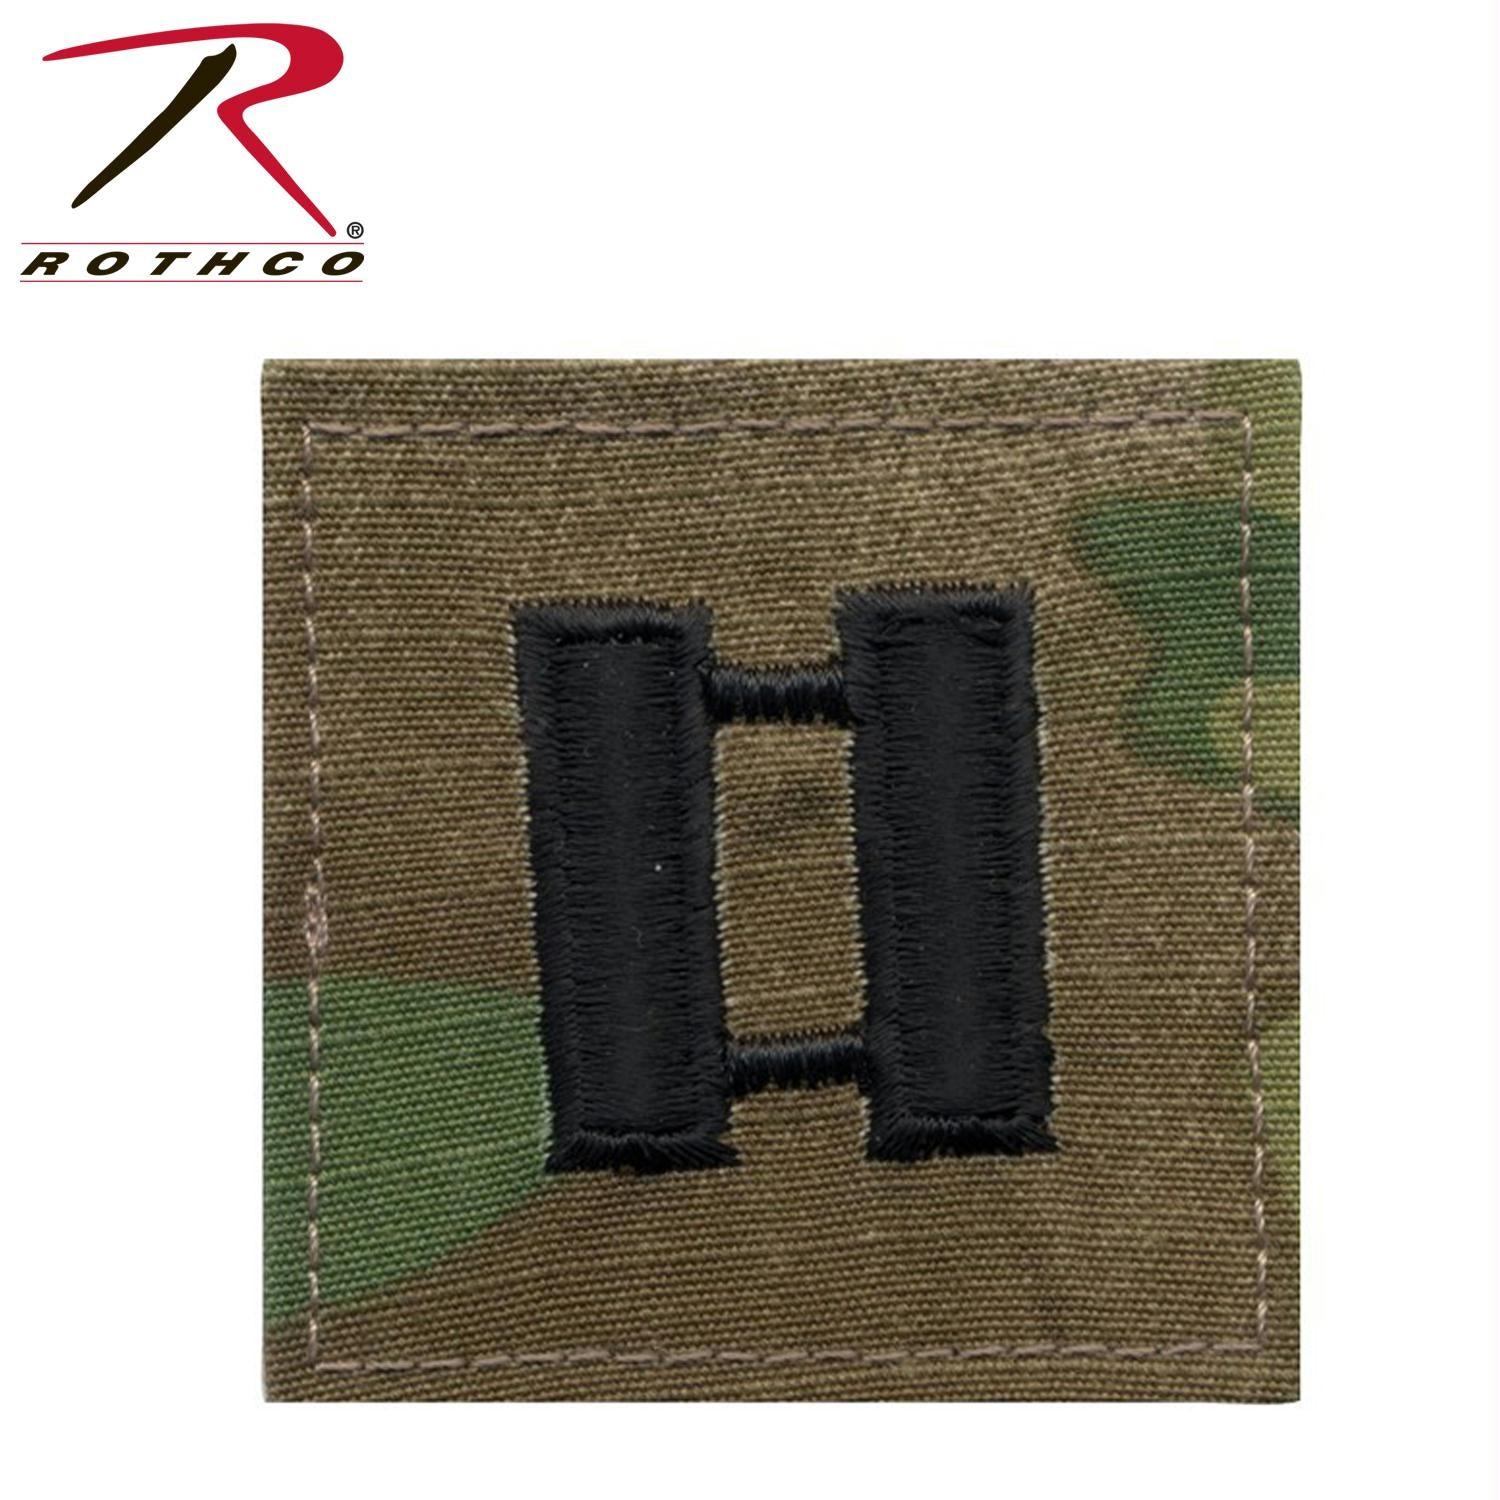 Official U.S. Made Embroidered Rank Insignia - Captain Insignia - MultiCam